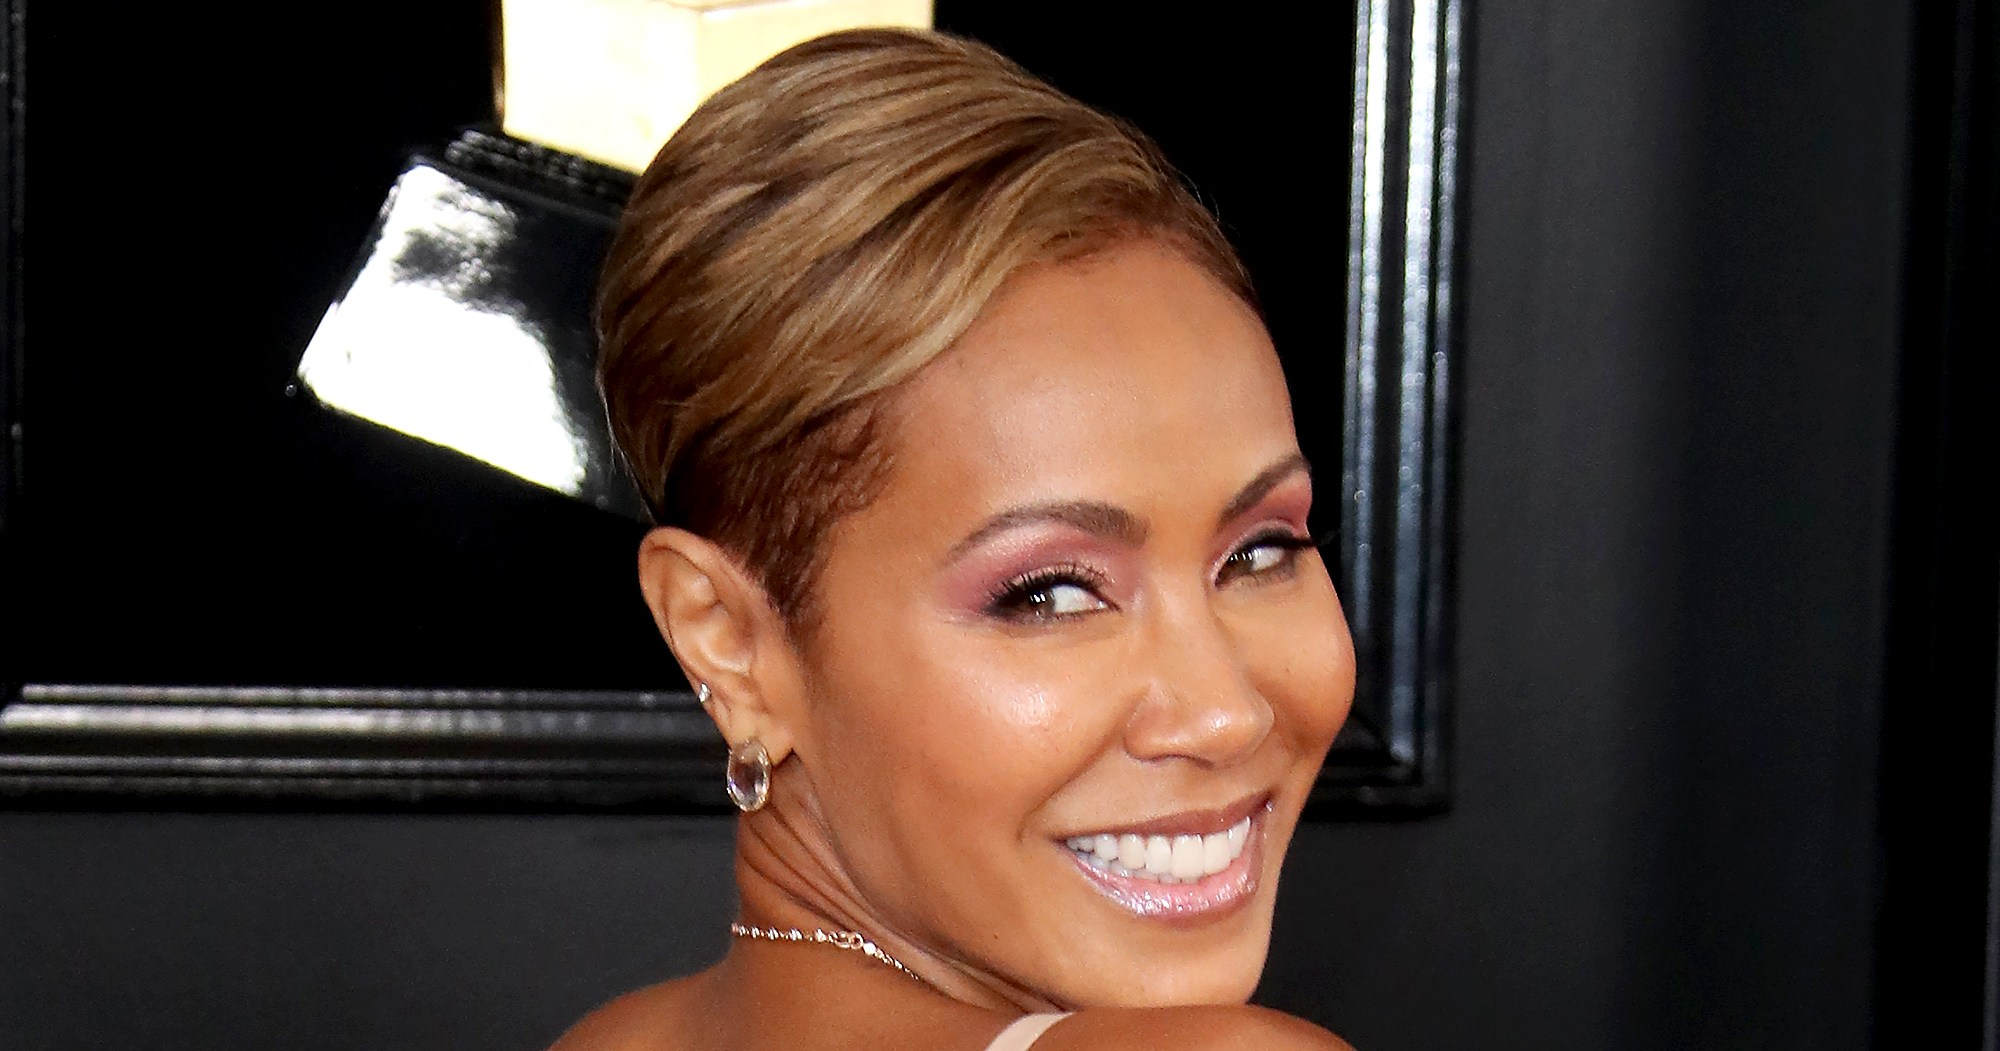 Jada Pinkett Smith Encourages 'Self Love' on Valentine's Day: 'The Process of Loving Is Not Always Kind'